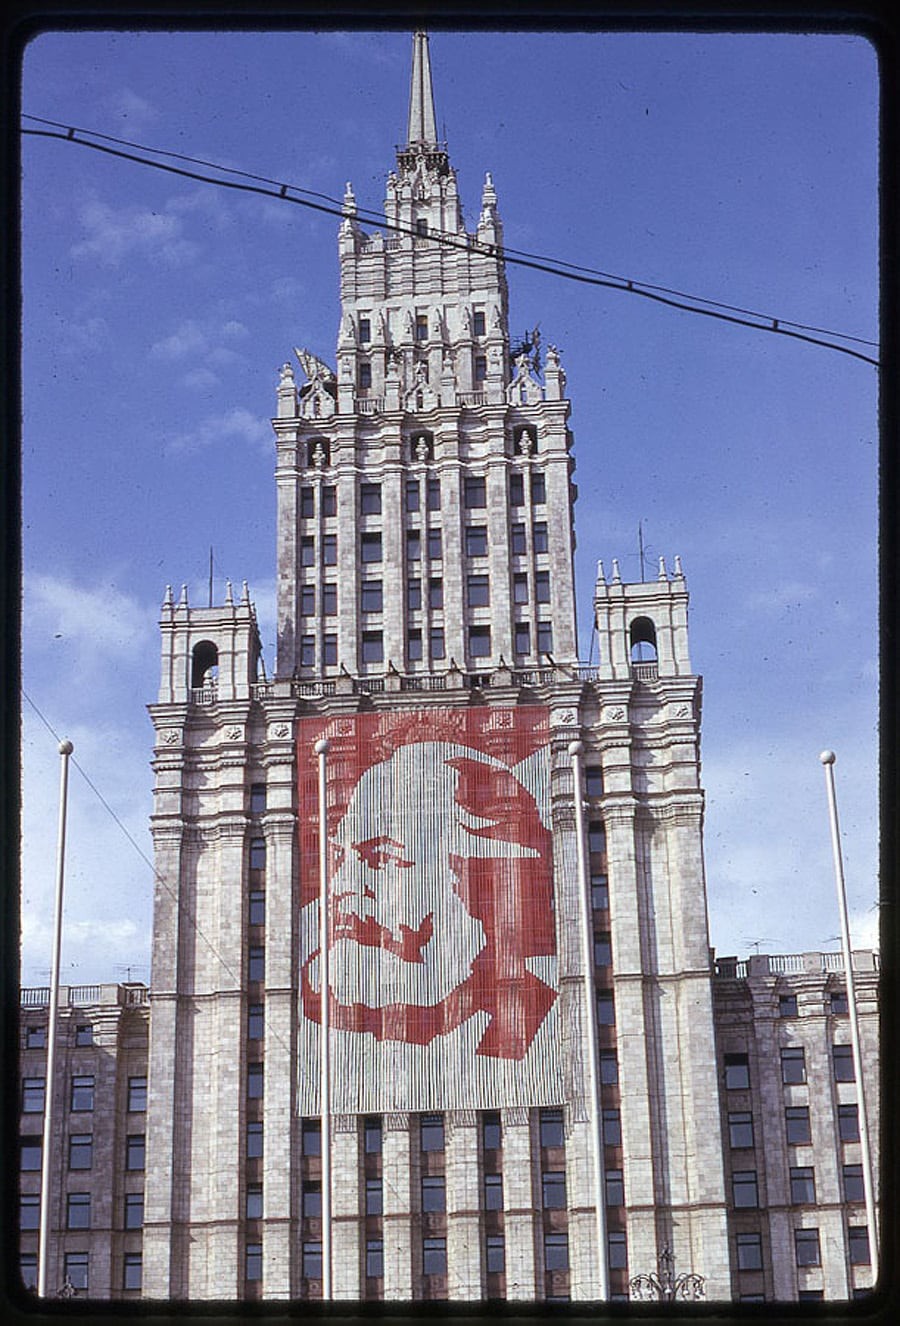 2817 Moscow 1969 in the lens of the American photographer